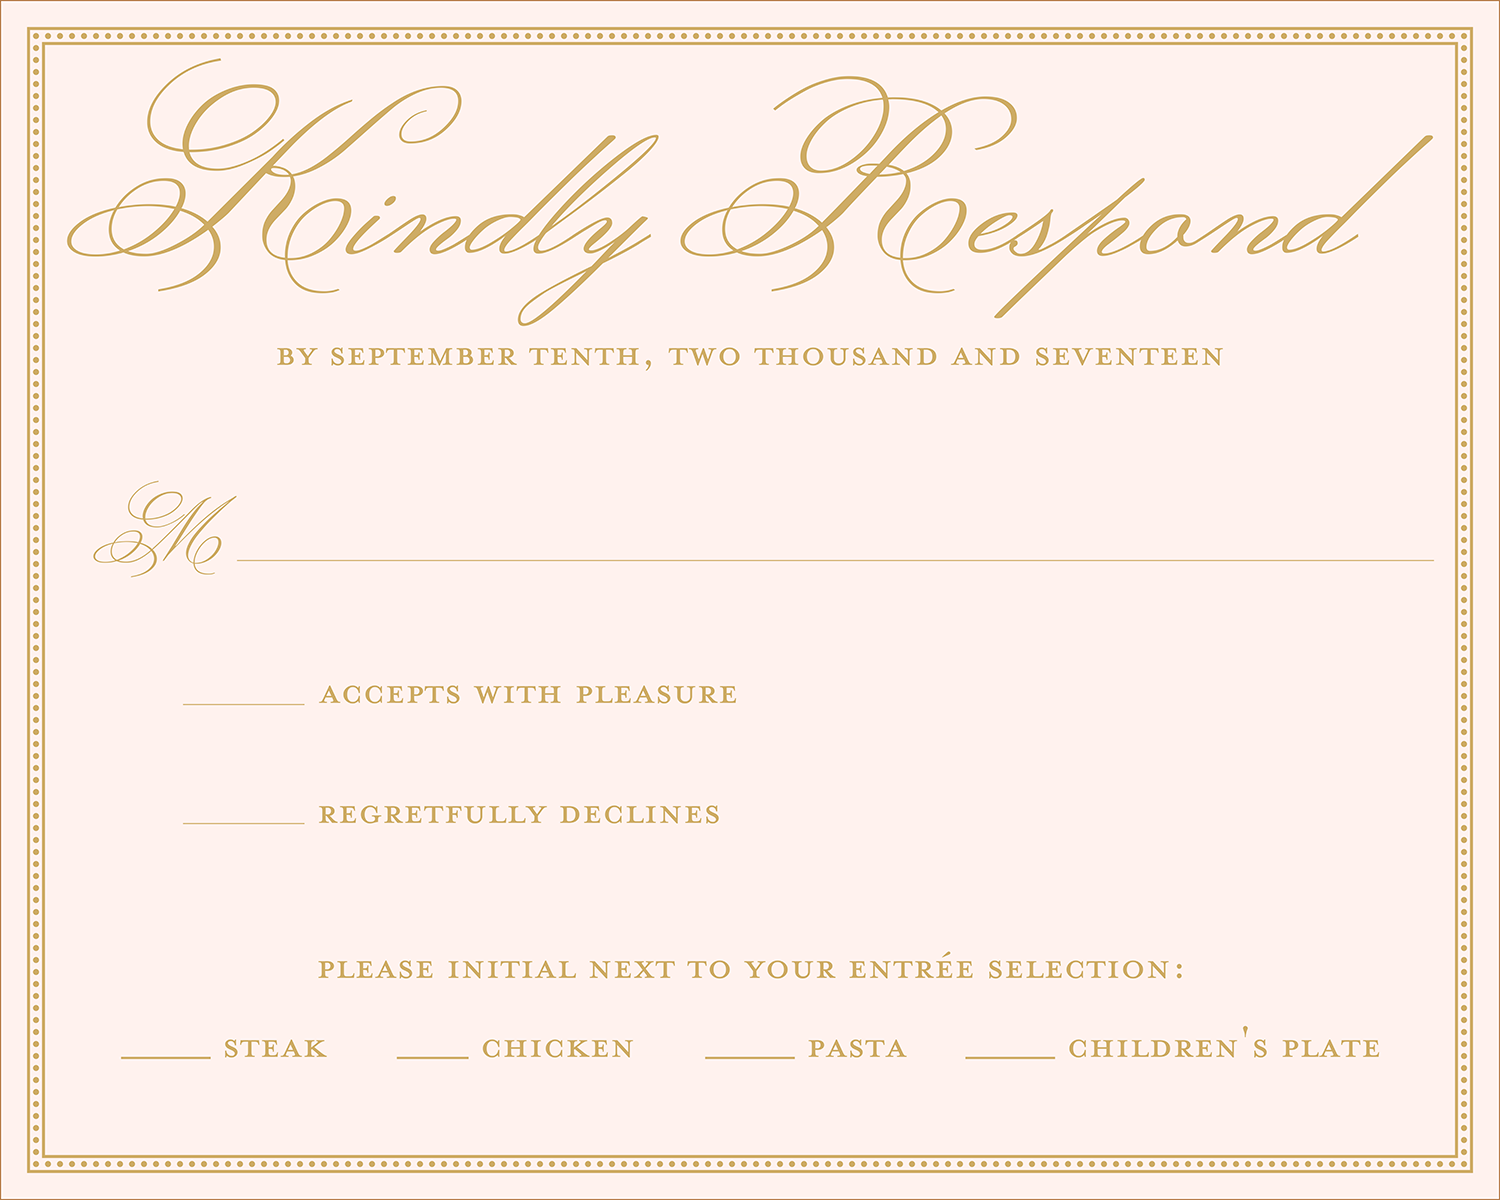 18 Wedding Rsvp Wording Ideas Wedding Rsvp Rsvp And Rsvp Wording